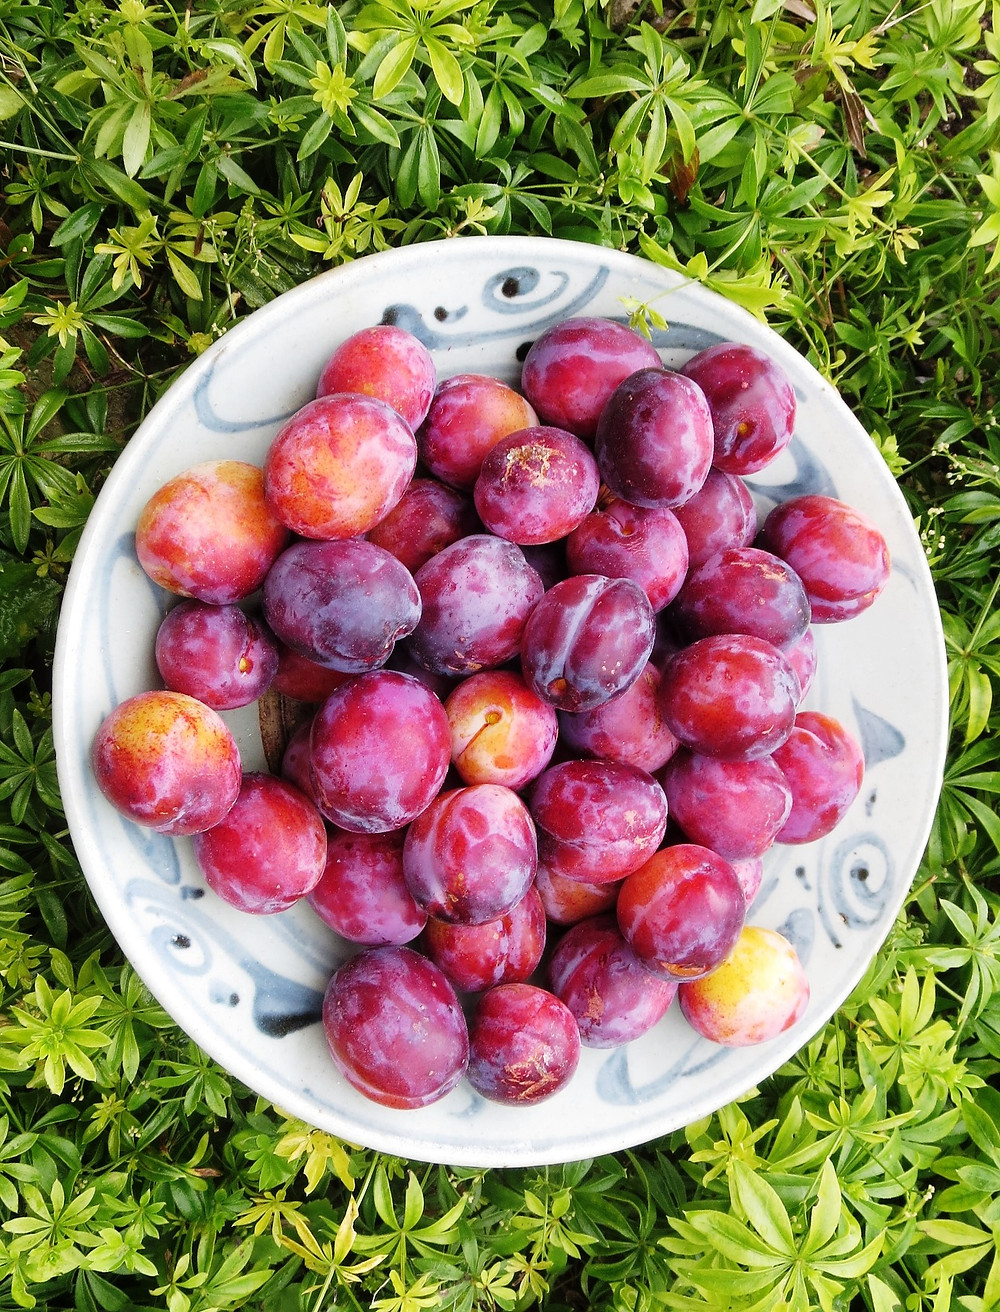 Bowl of freshly picked plums